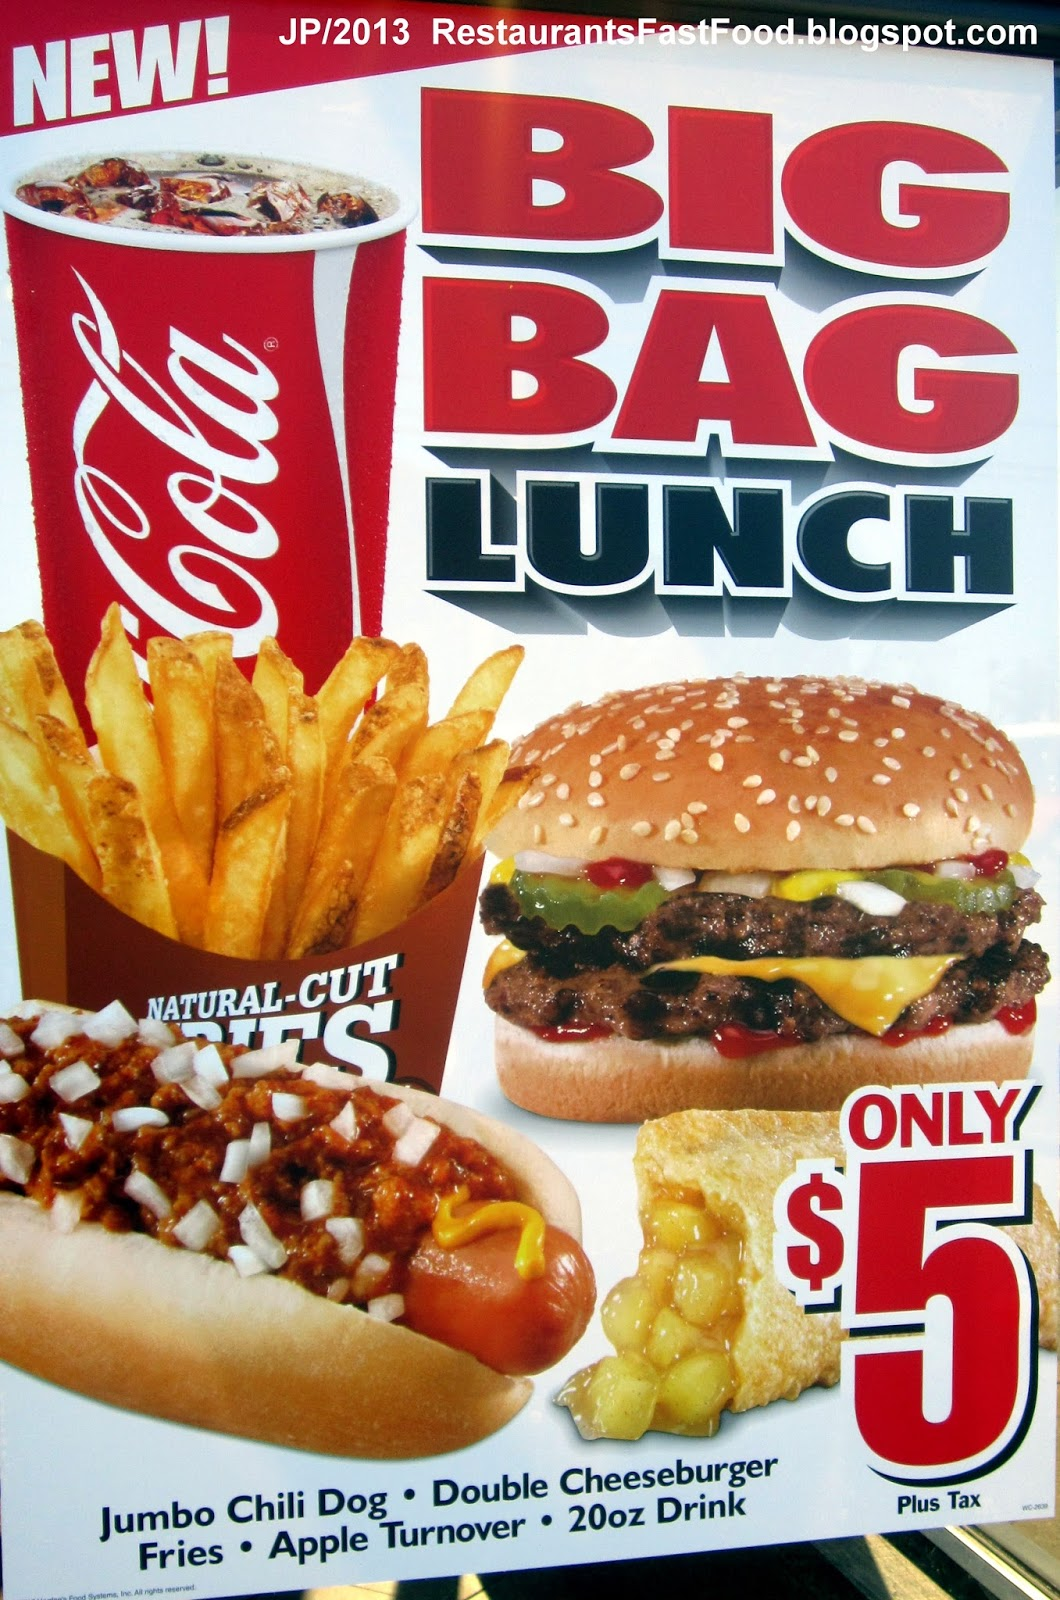 Alexmogil Aug 4 2014 The Five Dollar Box Lunch